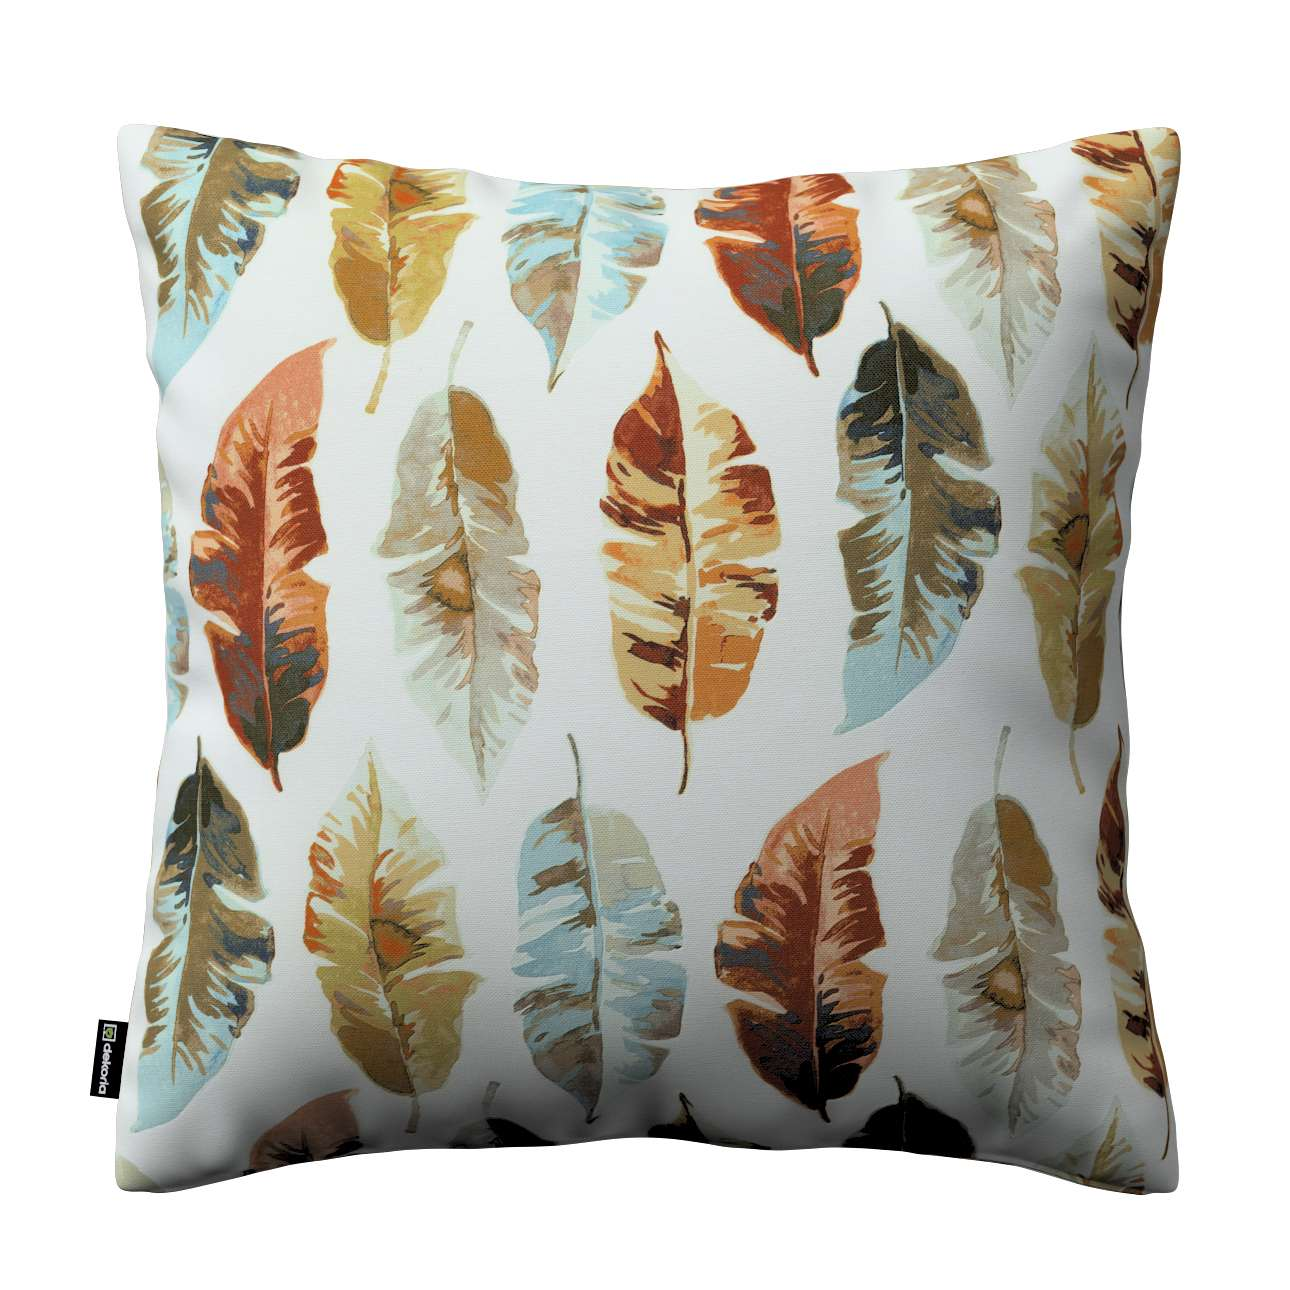 Kinga cushion cover in collection Urban Jungle, fabric: 141-43